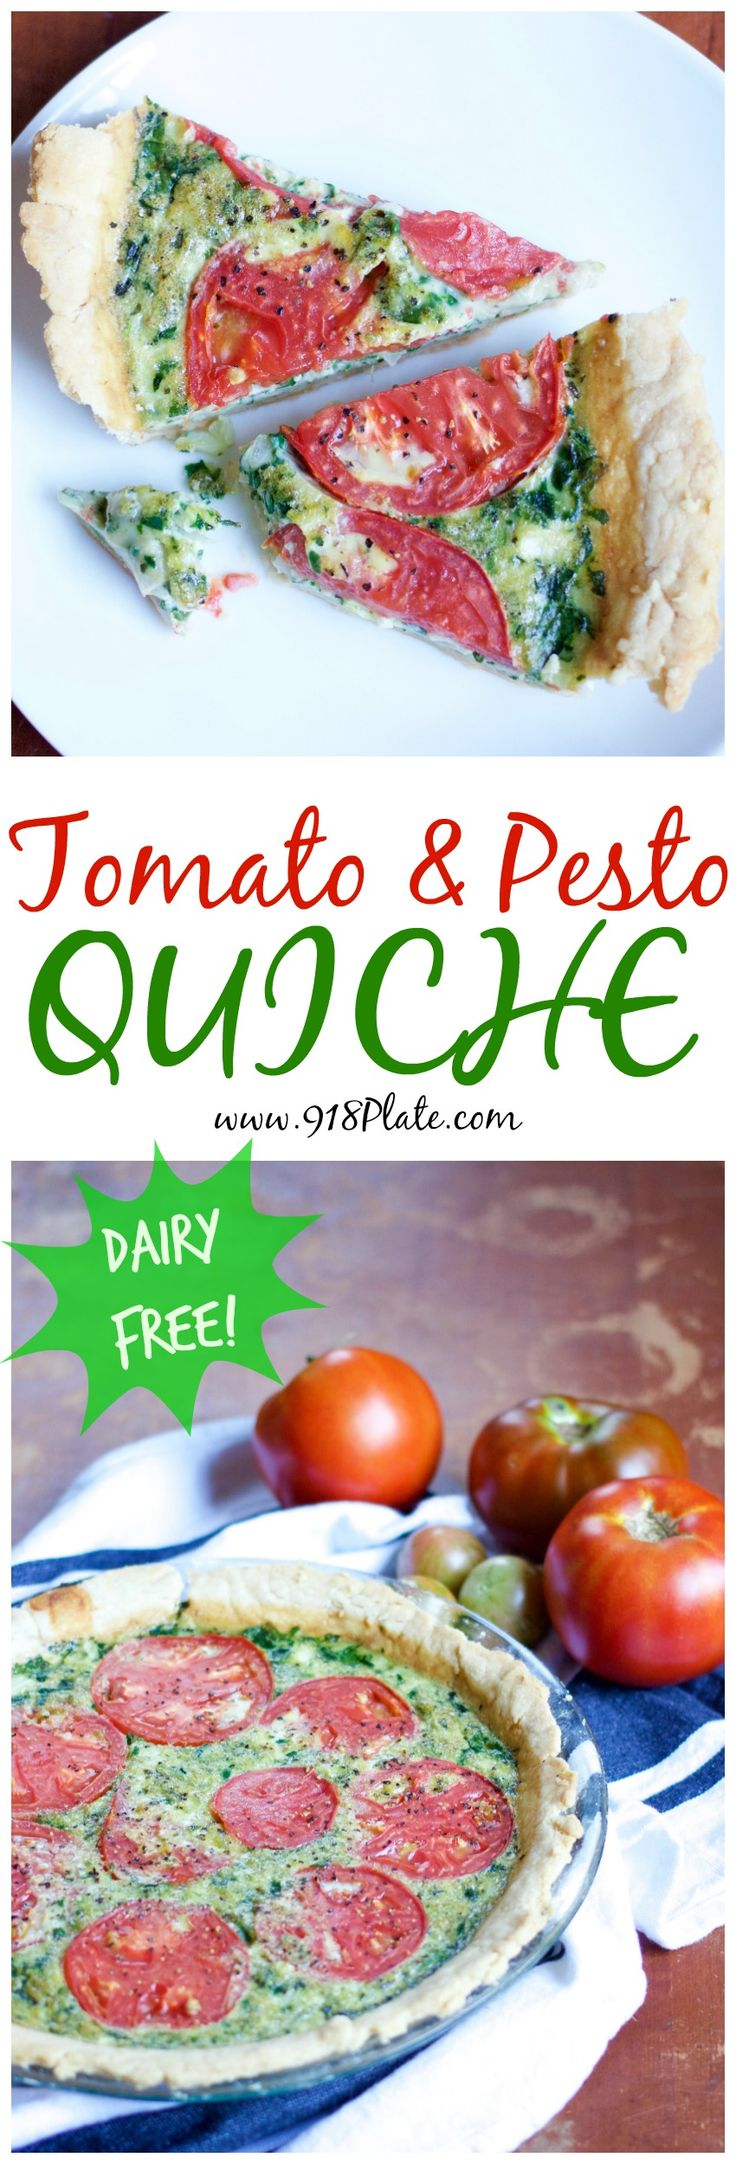 Blue apron quiche artichoke - This Dairy Free Tomato And Pesto Quiche Is Savory In All The Best Ways